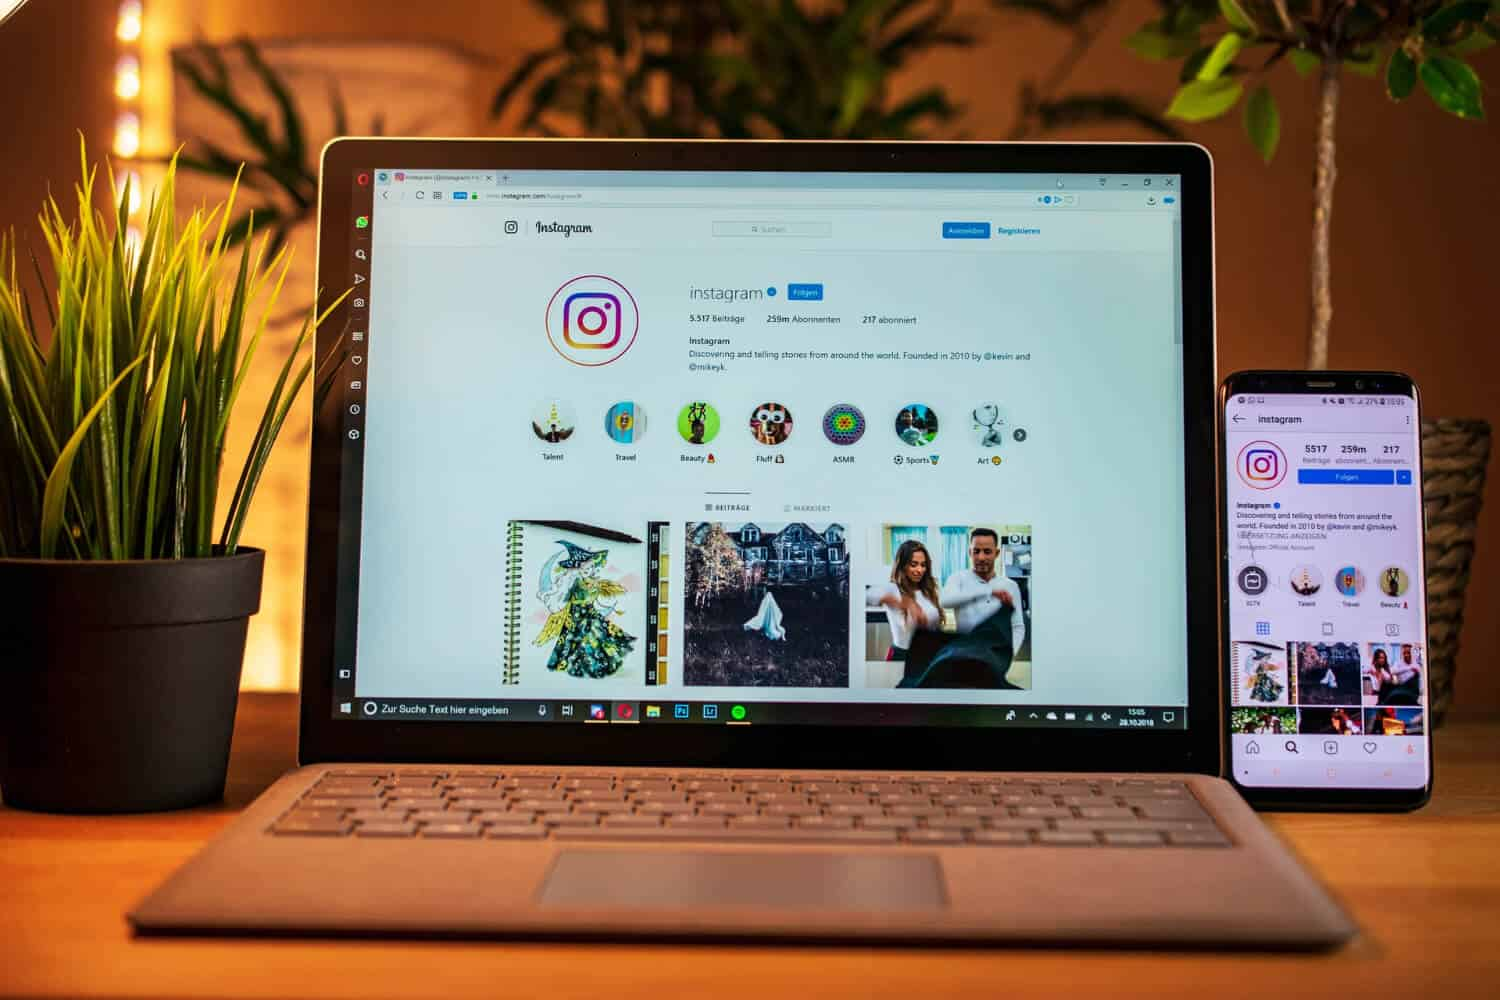 Instagram App Open On Laptop and Cellphone